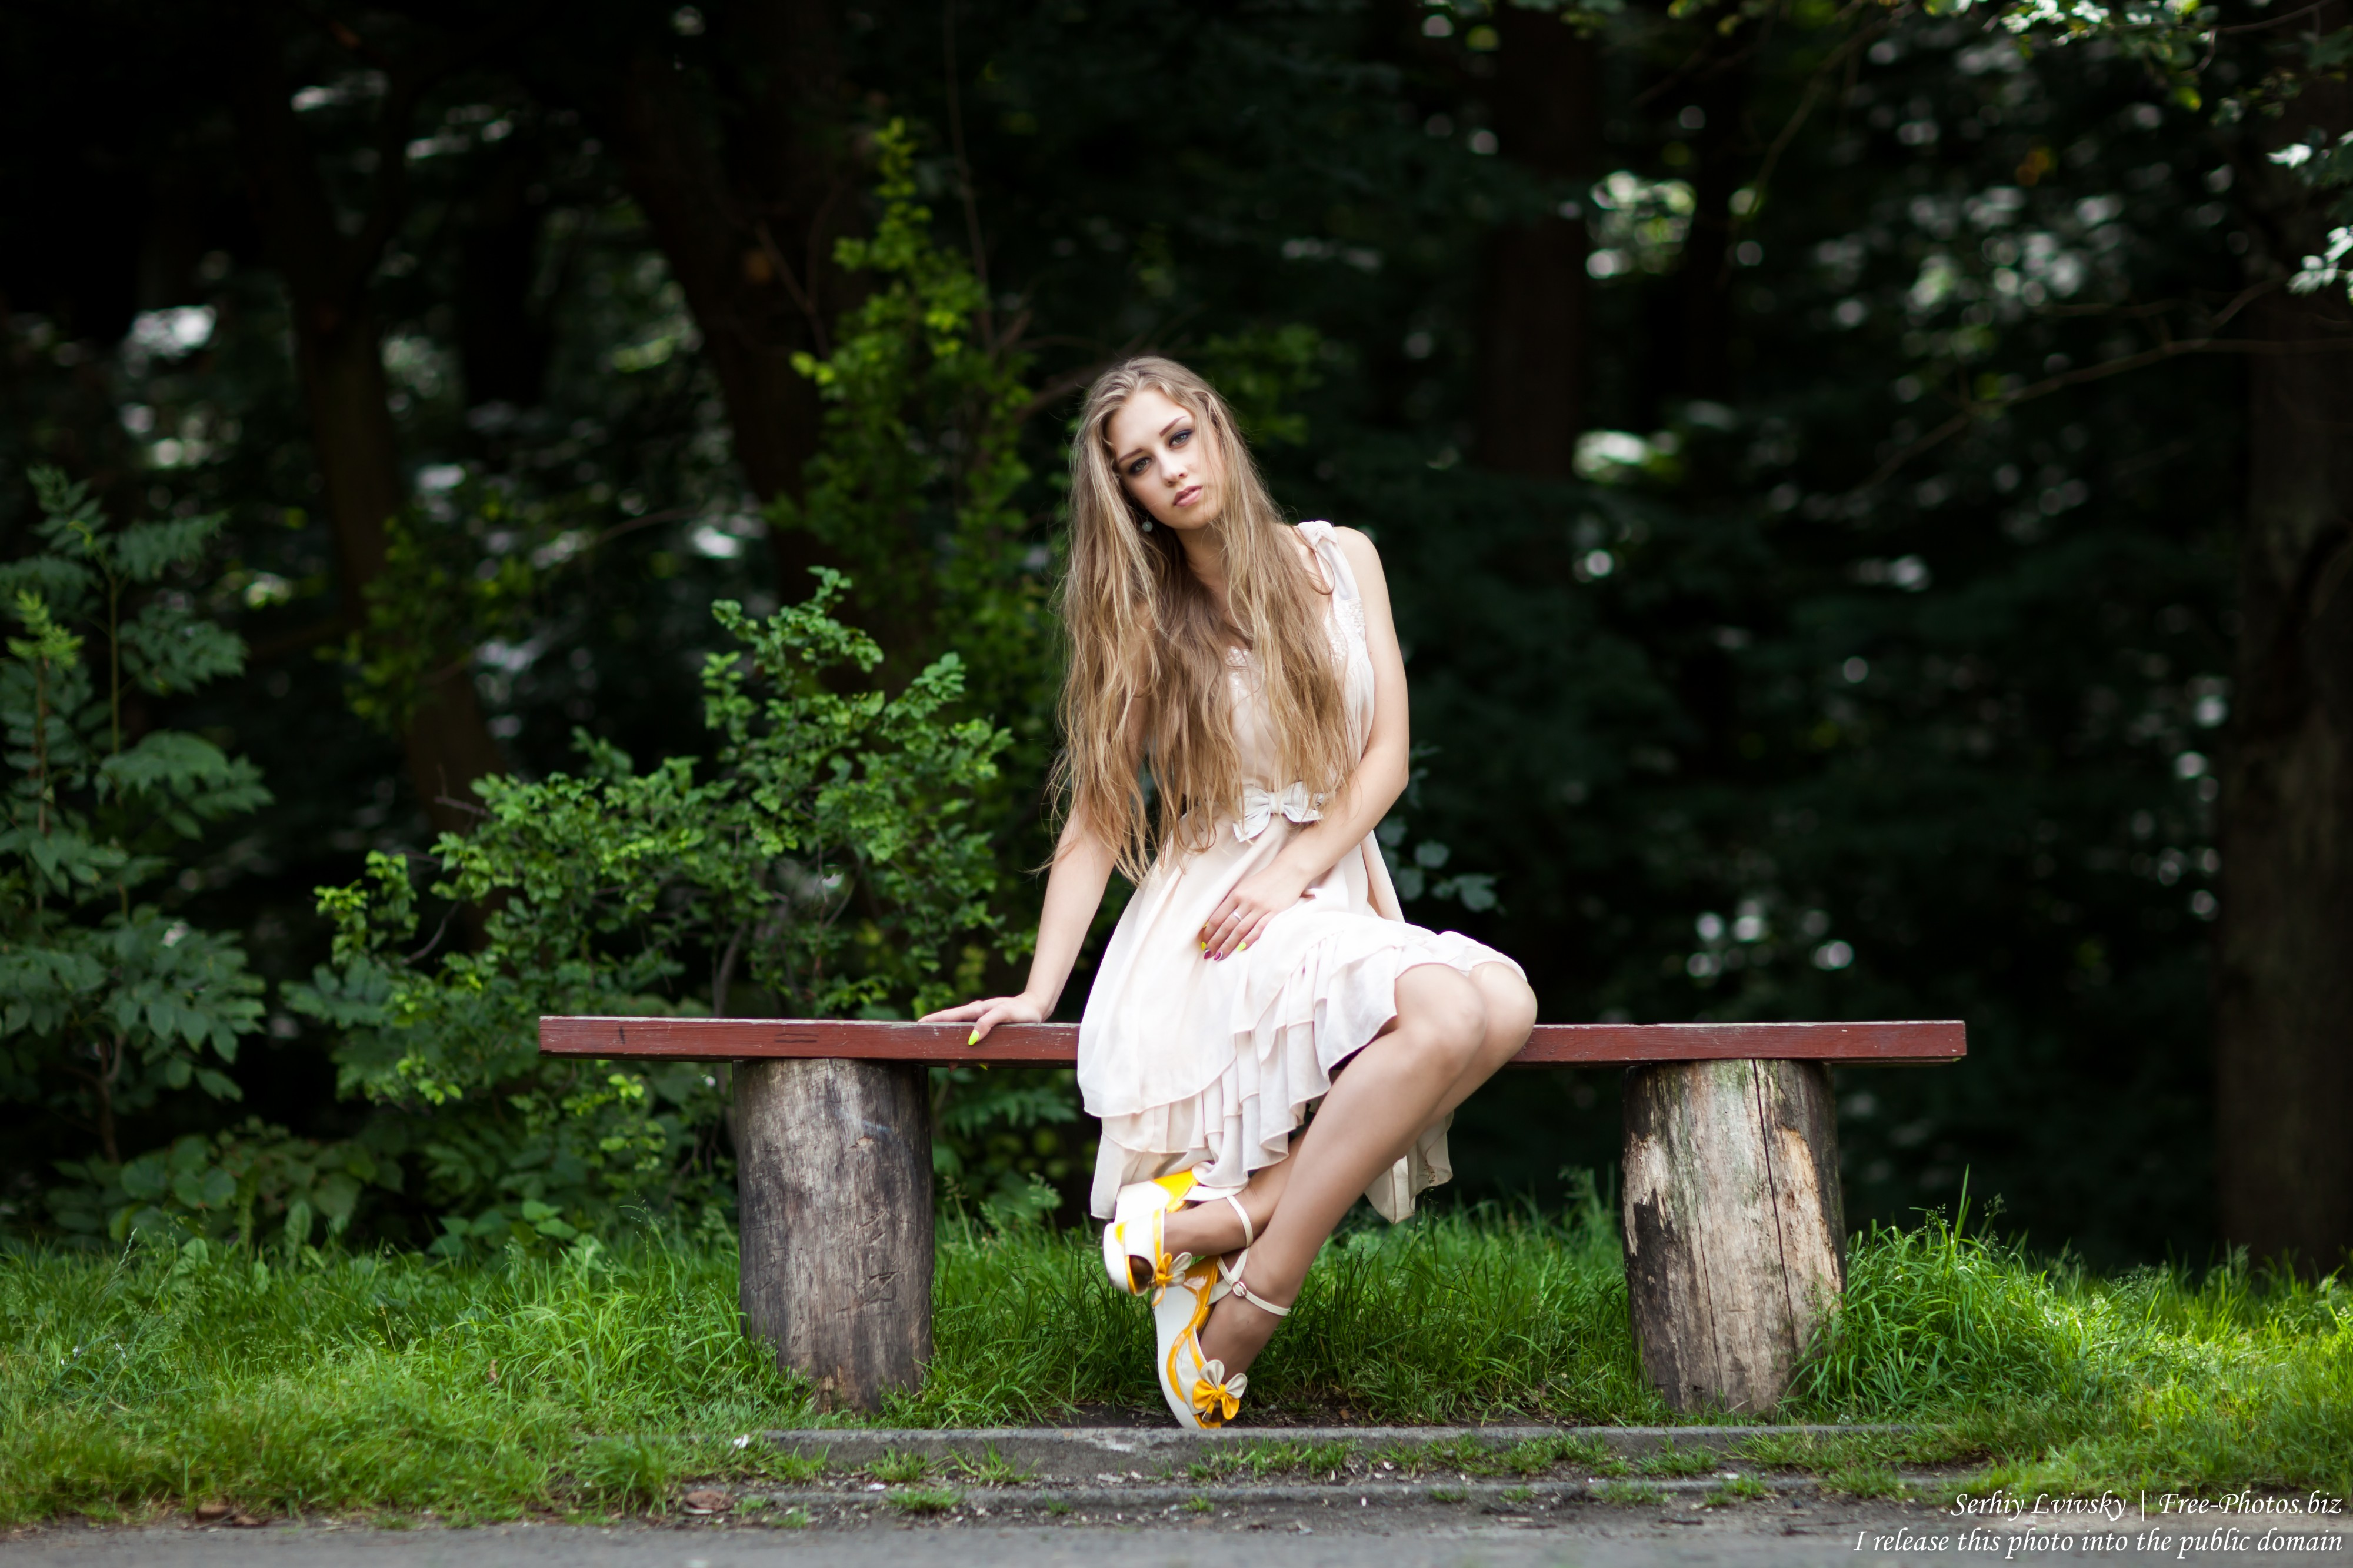 a 16-year-old natural blonde girl photographed in August 2016 by Serhiy Lvivsky, picture 20